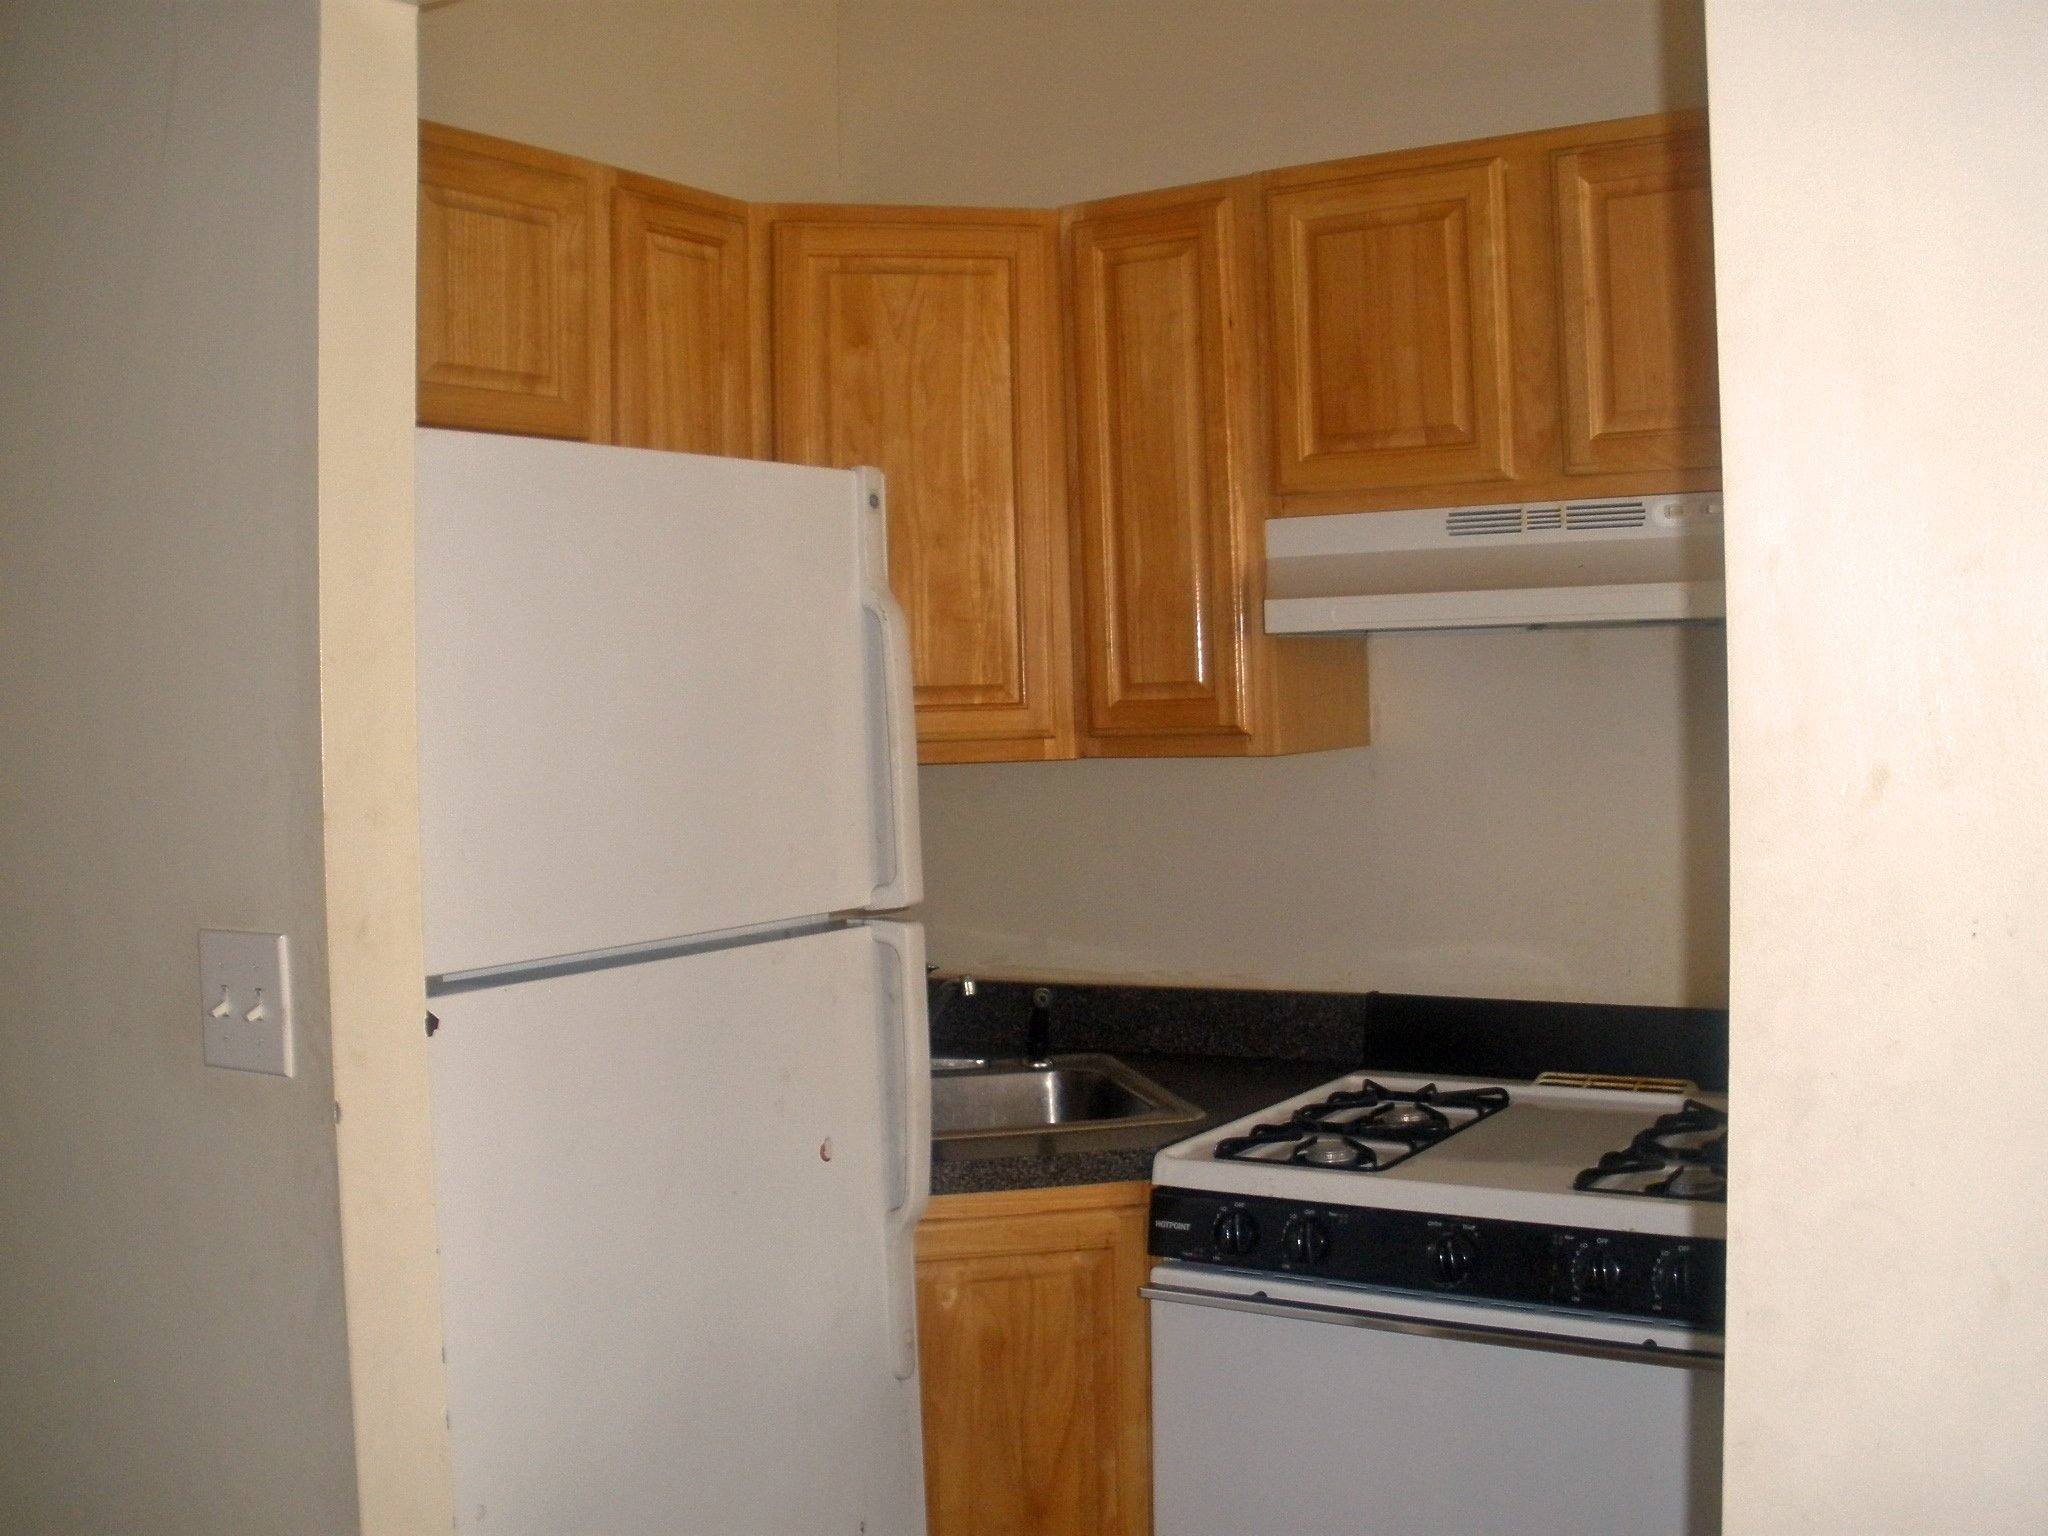 2 Bedroom Apartments For Rent In Brooklyn Ny 28 Images